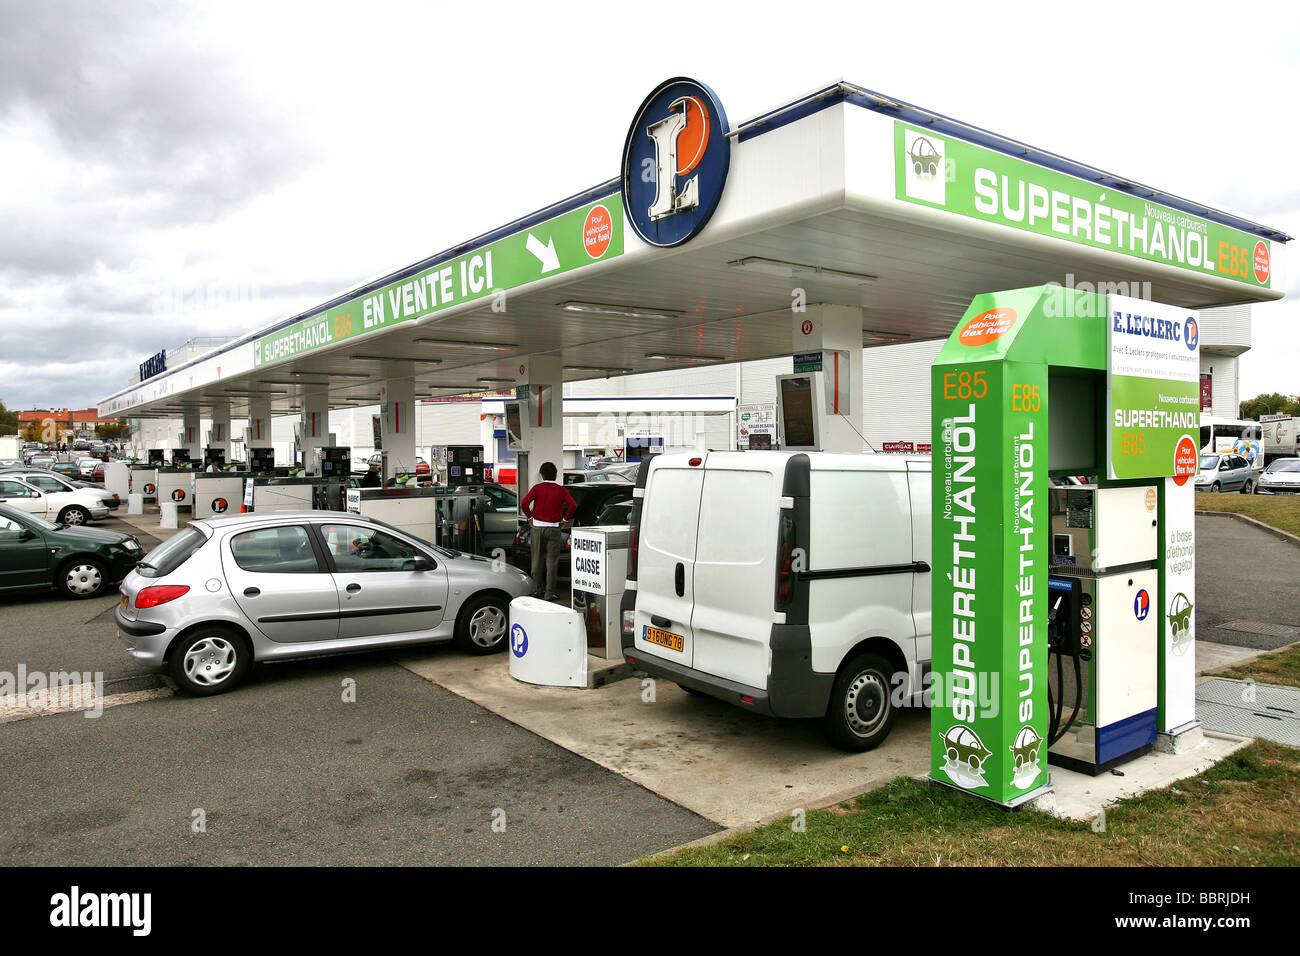 fuel pump e85 stockfotos fuel pump e85 bilder alamy. Black Bedroom Furniture Sets. Home Design Ideas